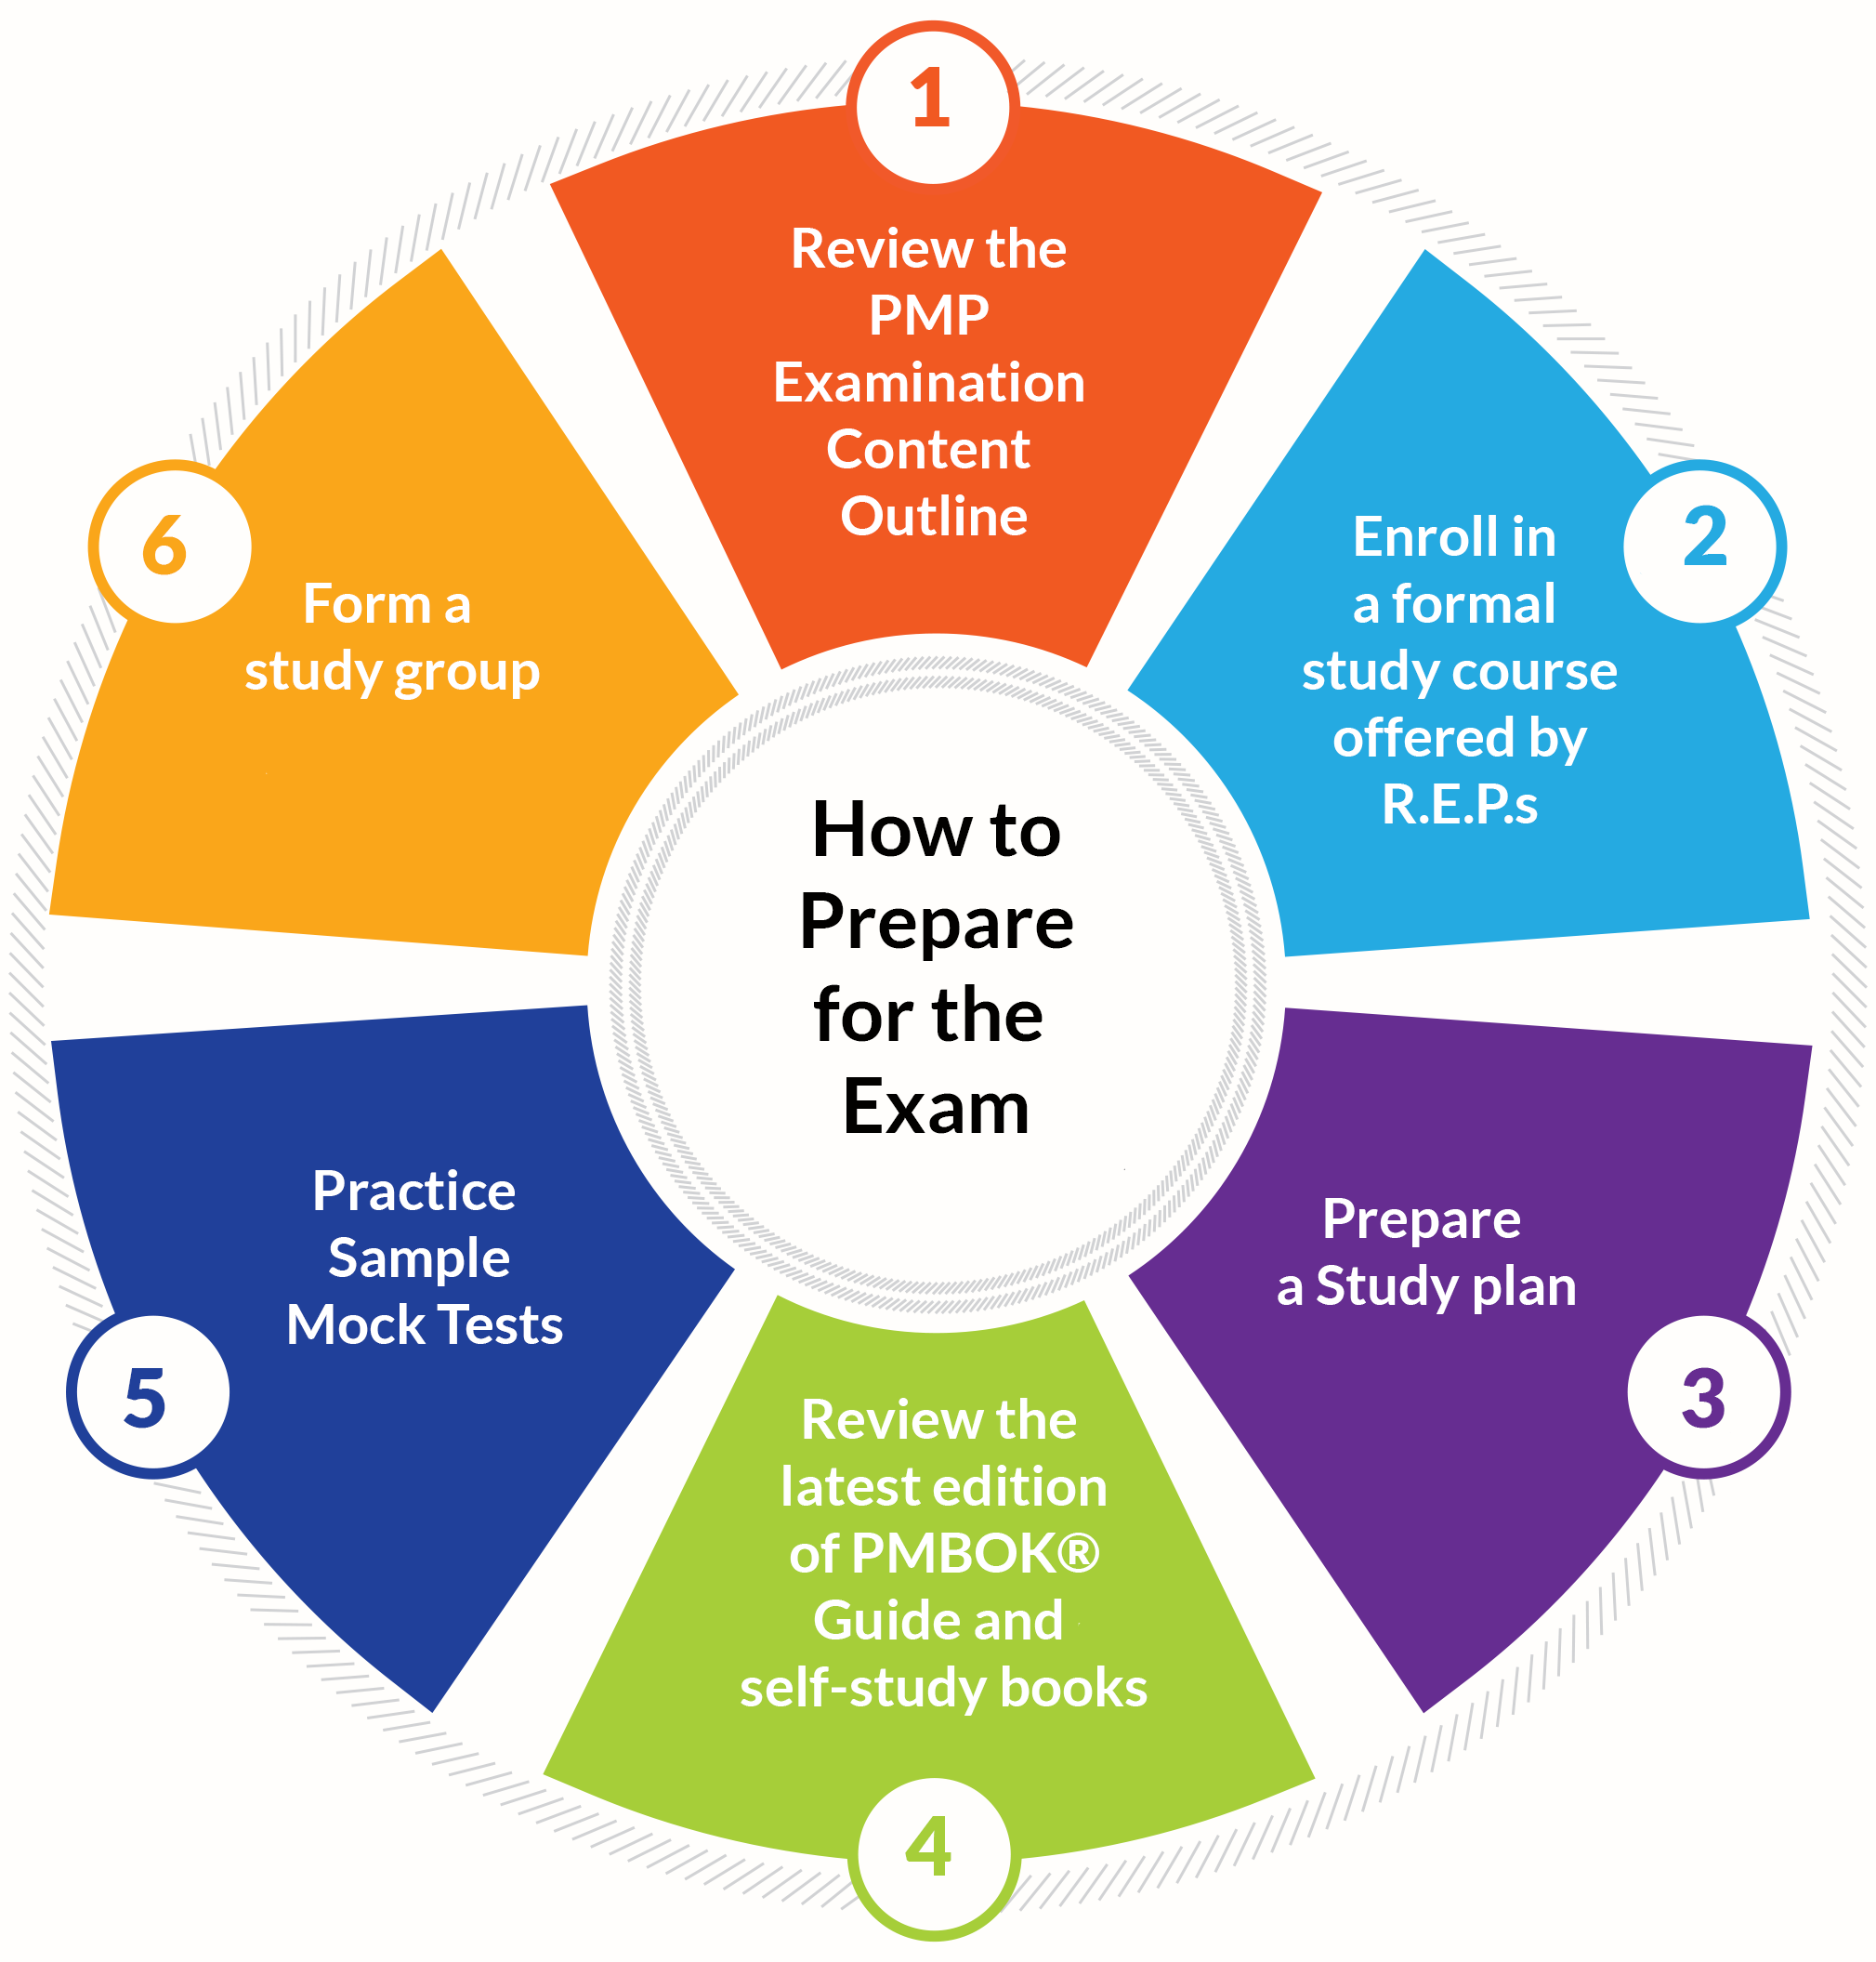 How To Prepare For The PMP Exam